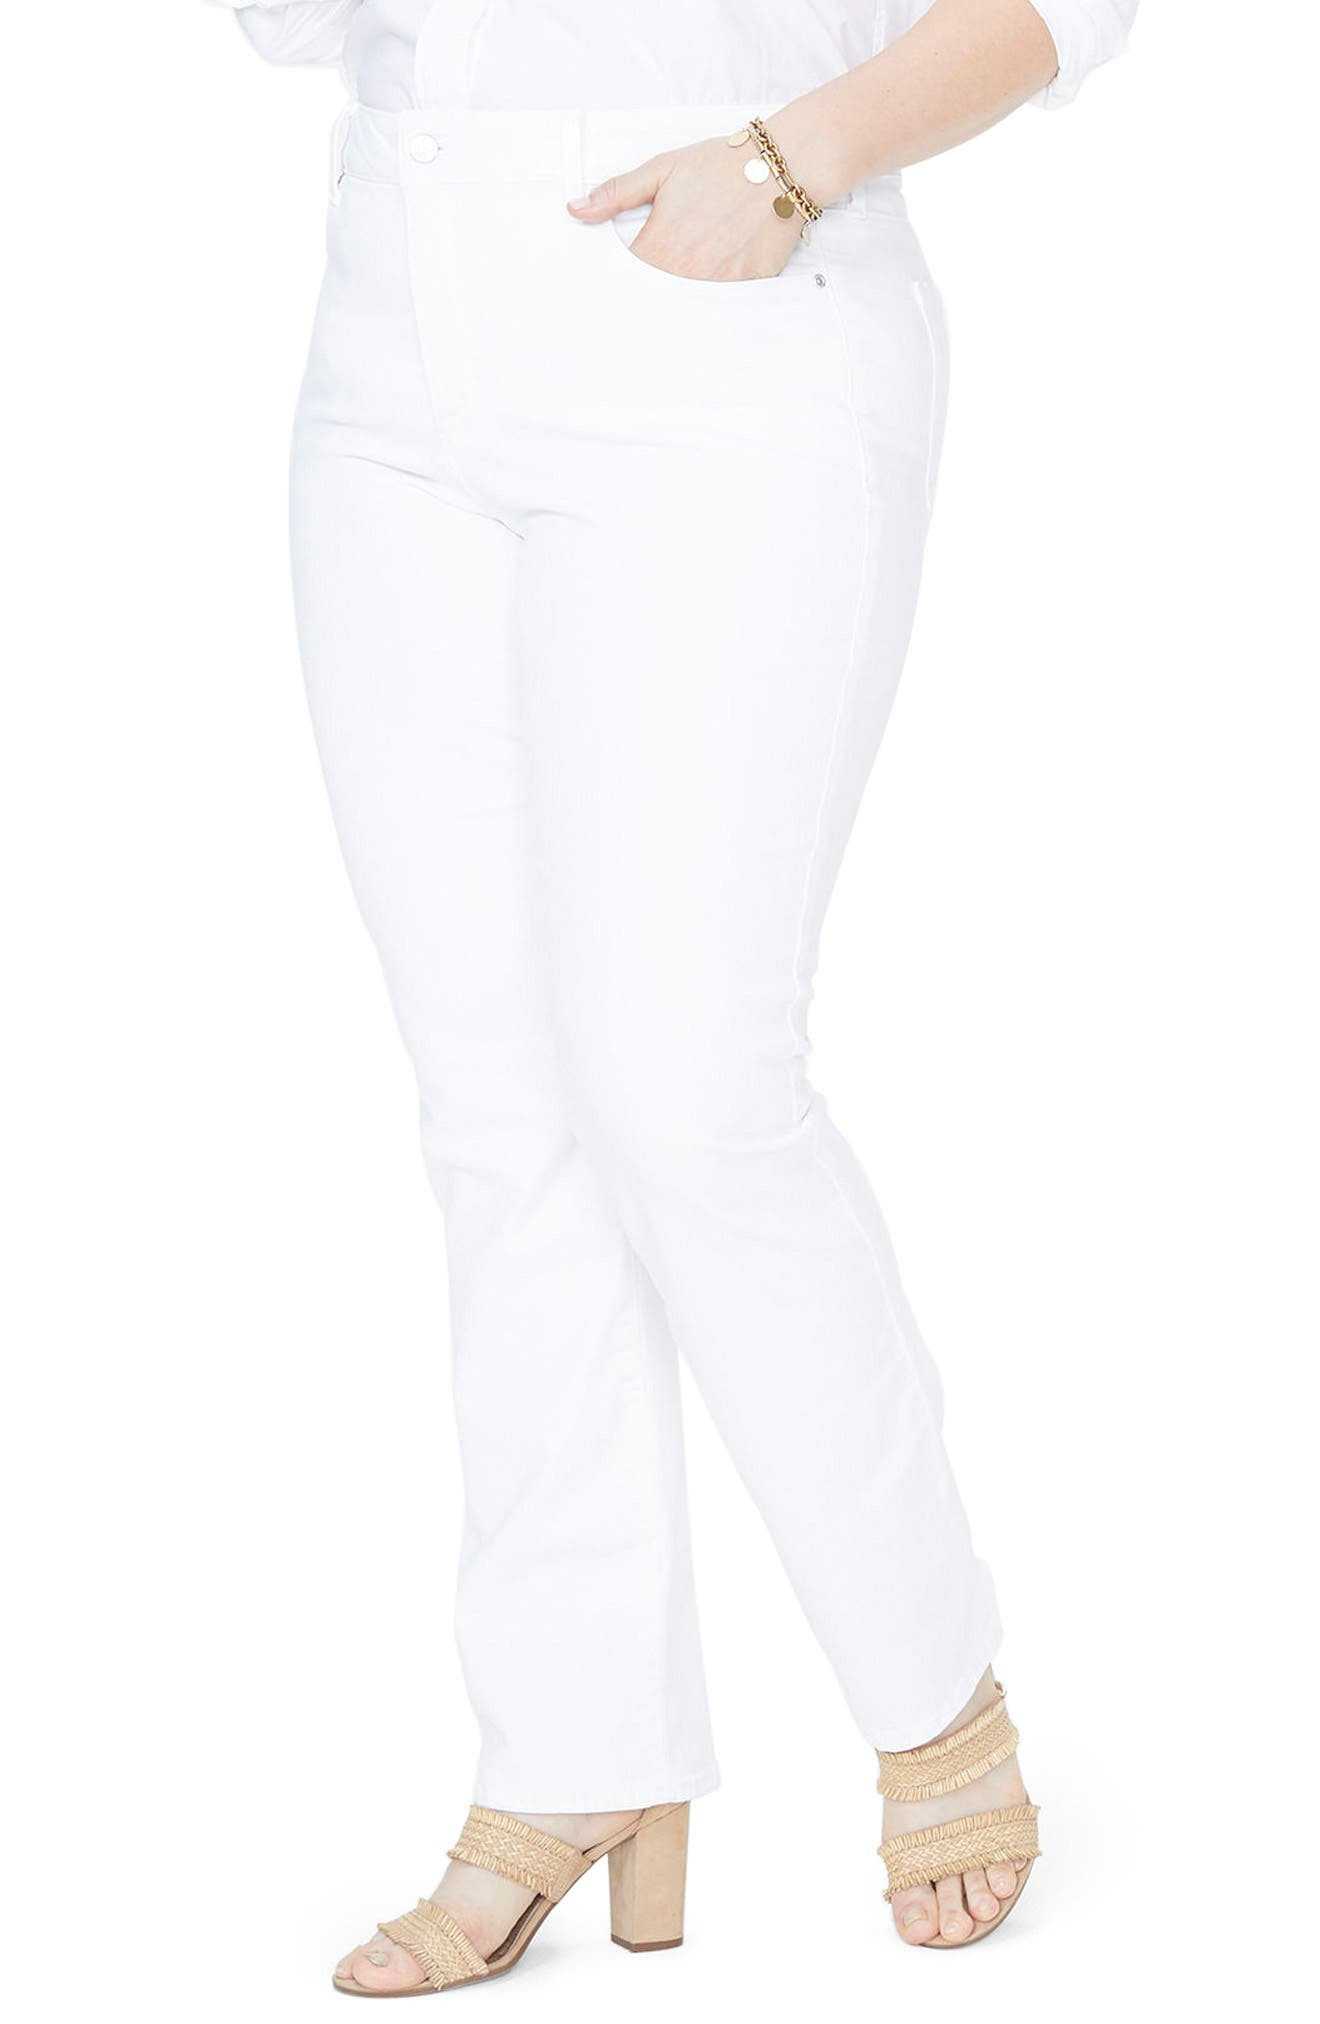 Marilyn Stretch Straight Leg Jeans,                             Main thumbnail 1, color,                             OPTIC WHITE